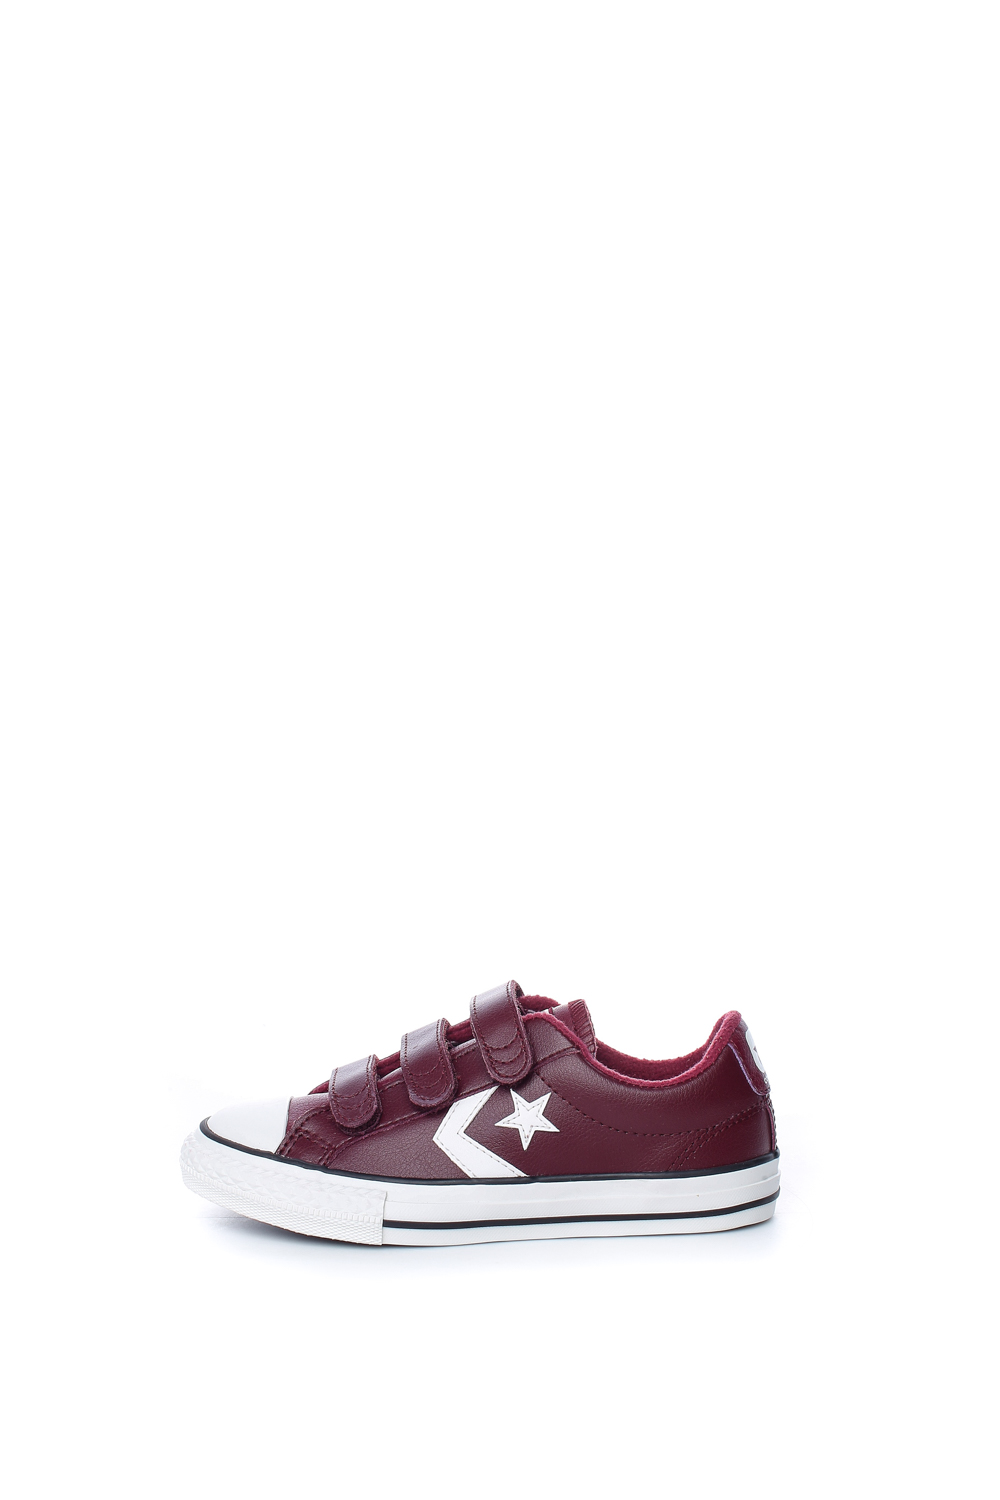 CONVERSE – Παιδικά sneakers CONVERSE STAR PLAYER 3V μπορντό